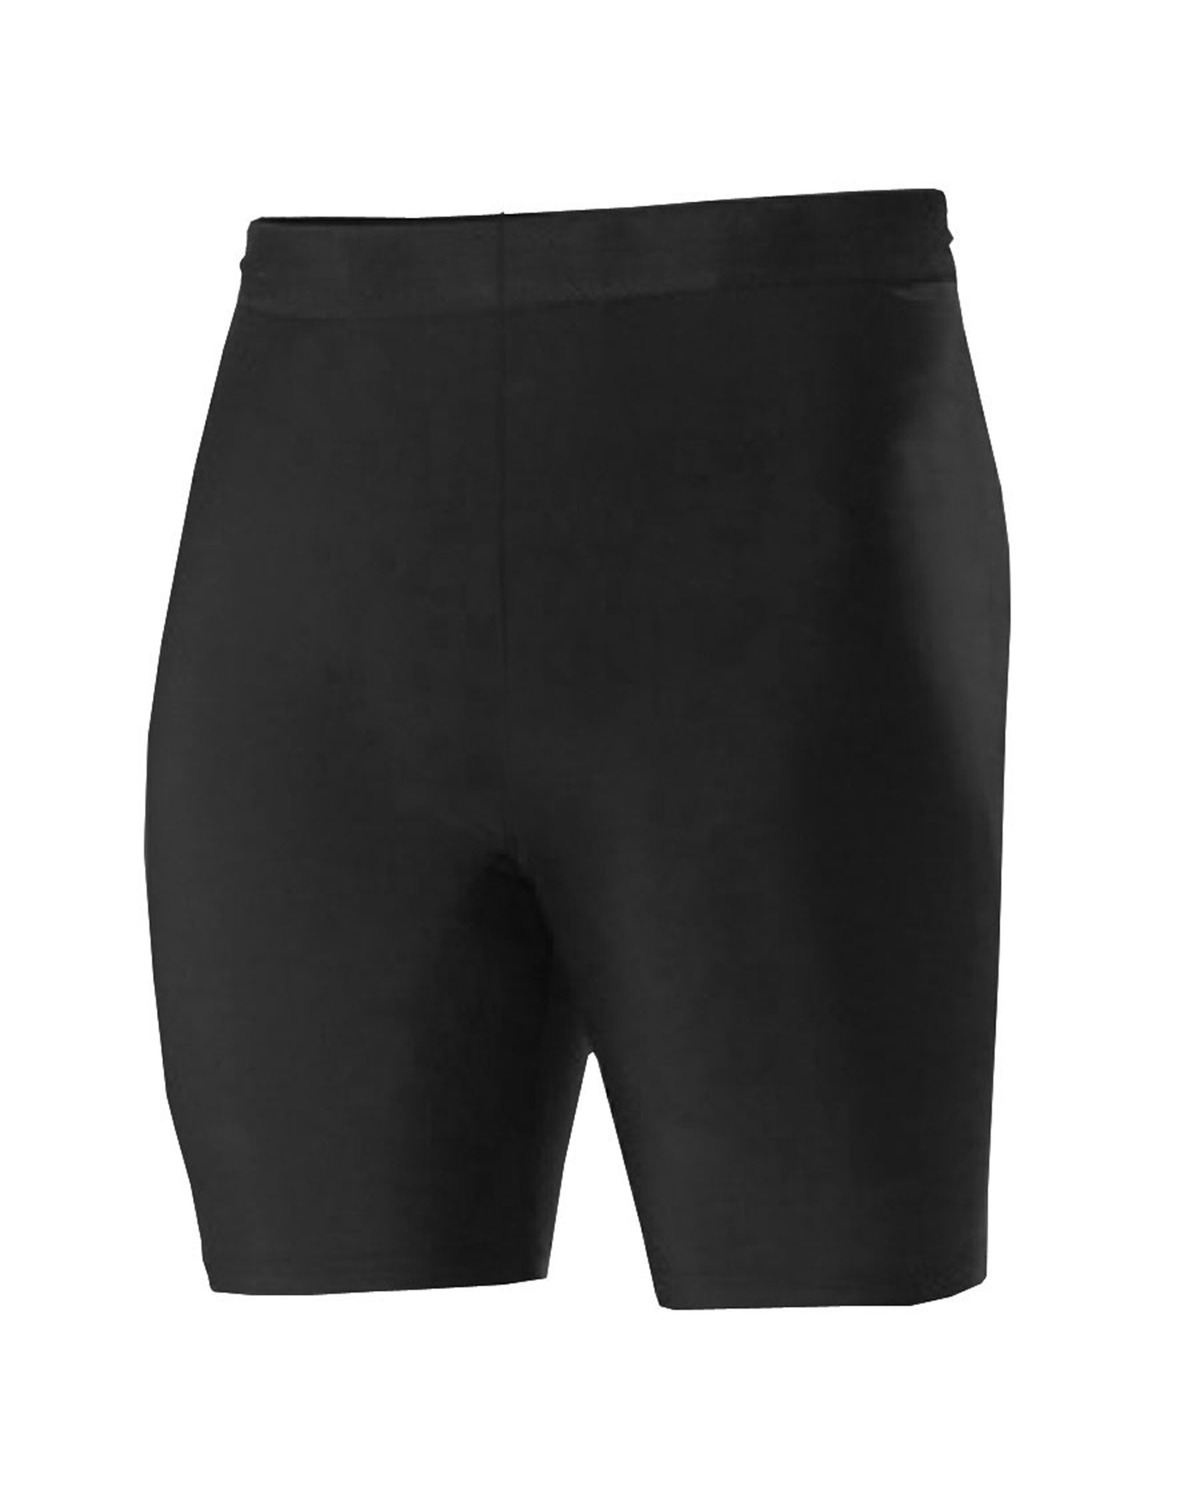 "Men's 8"" Inseam Compression Shorts"